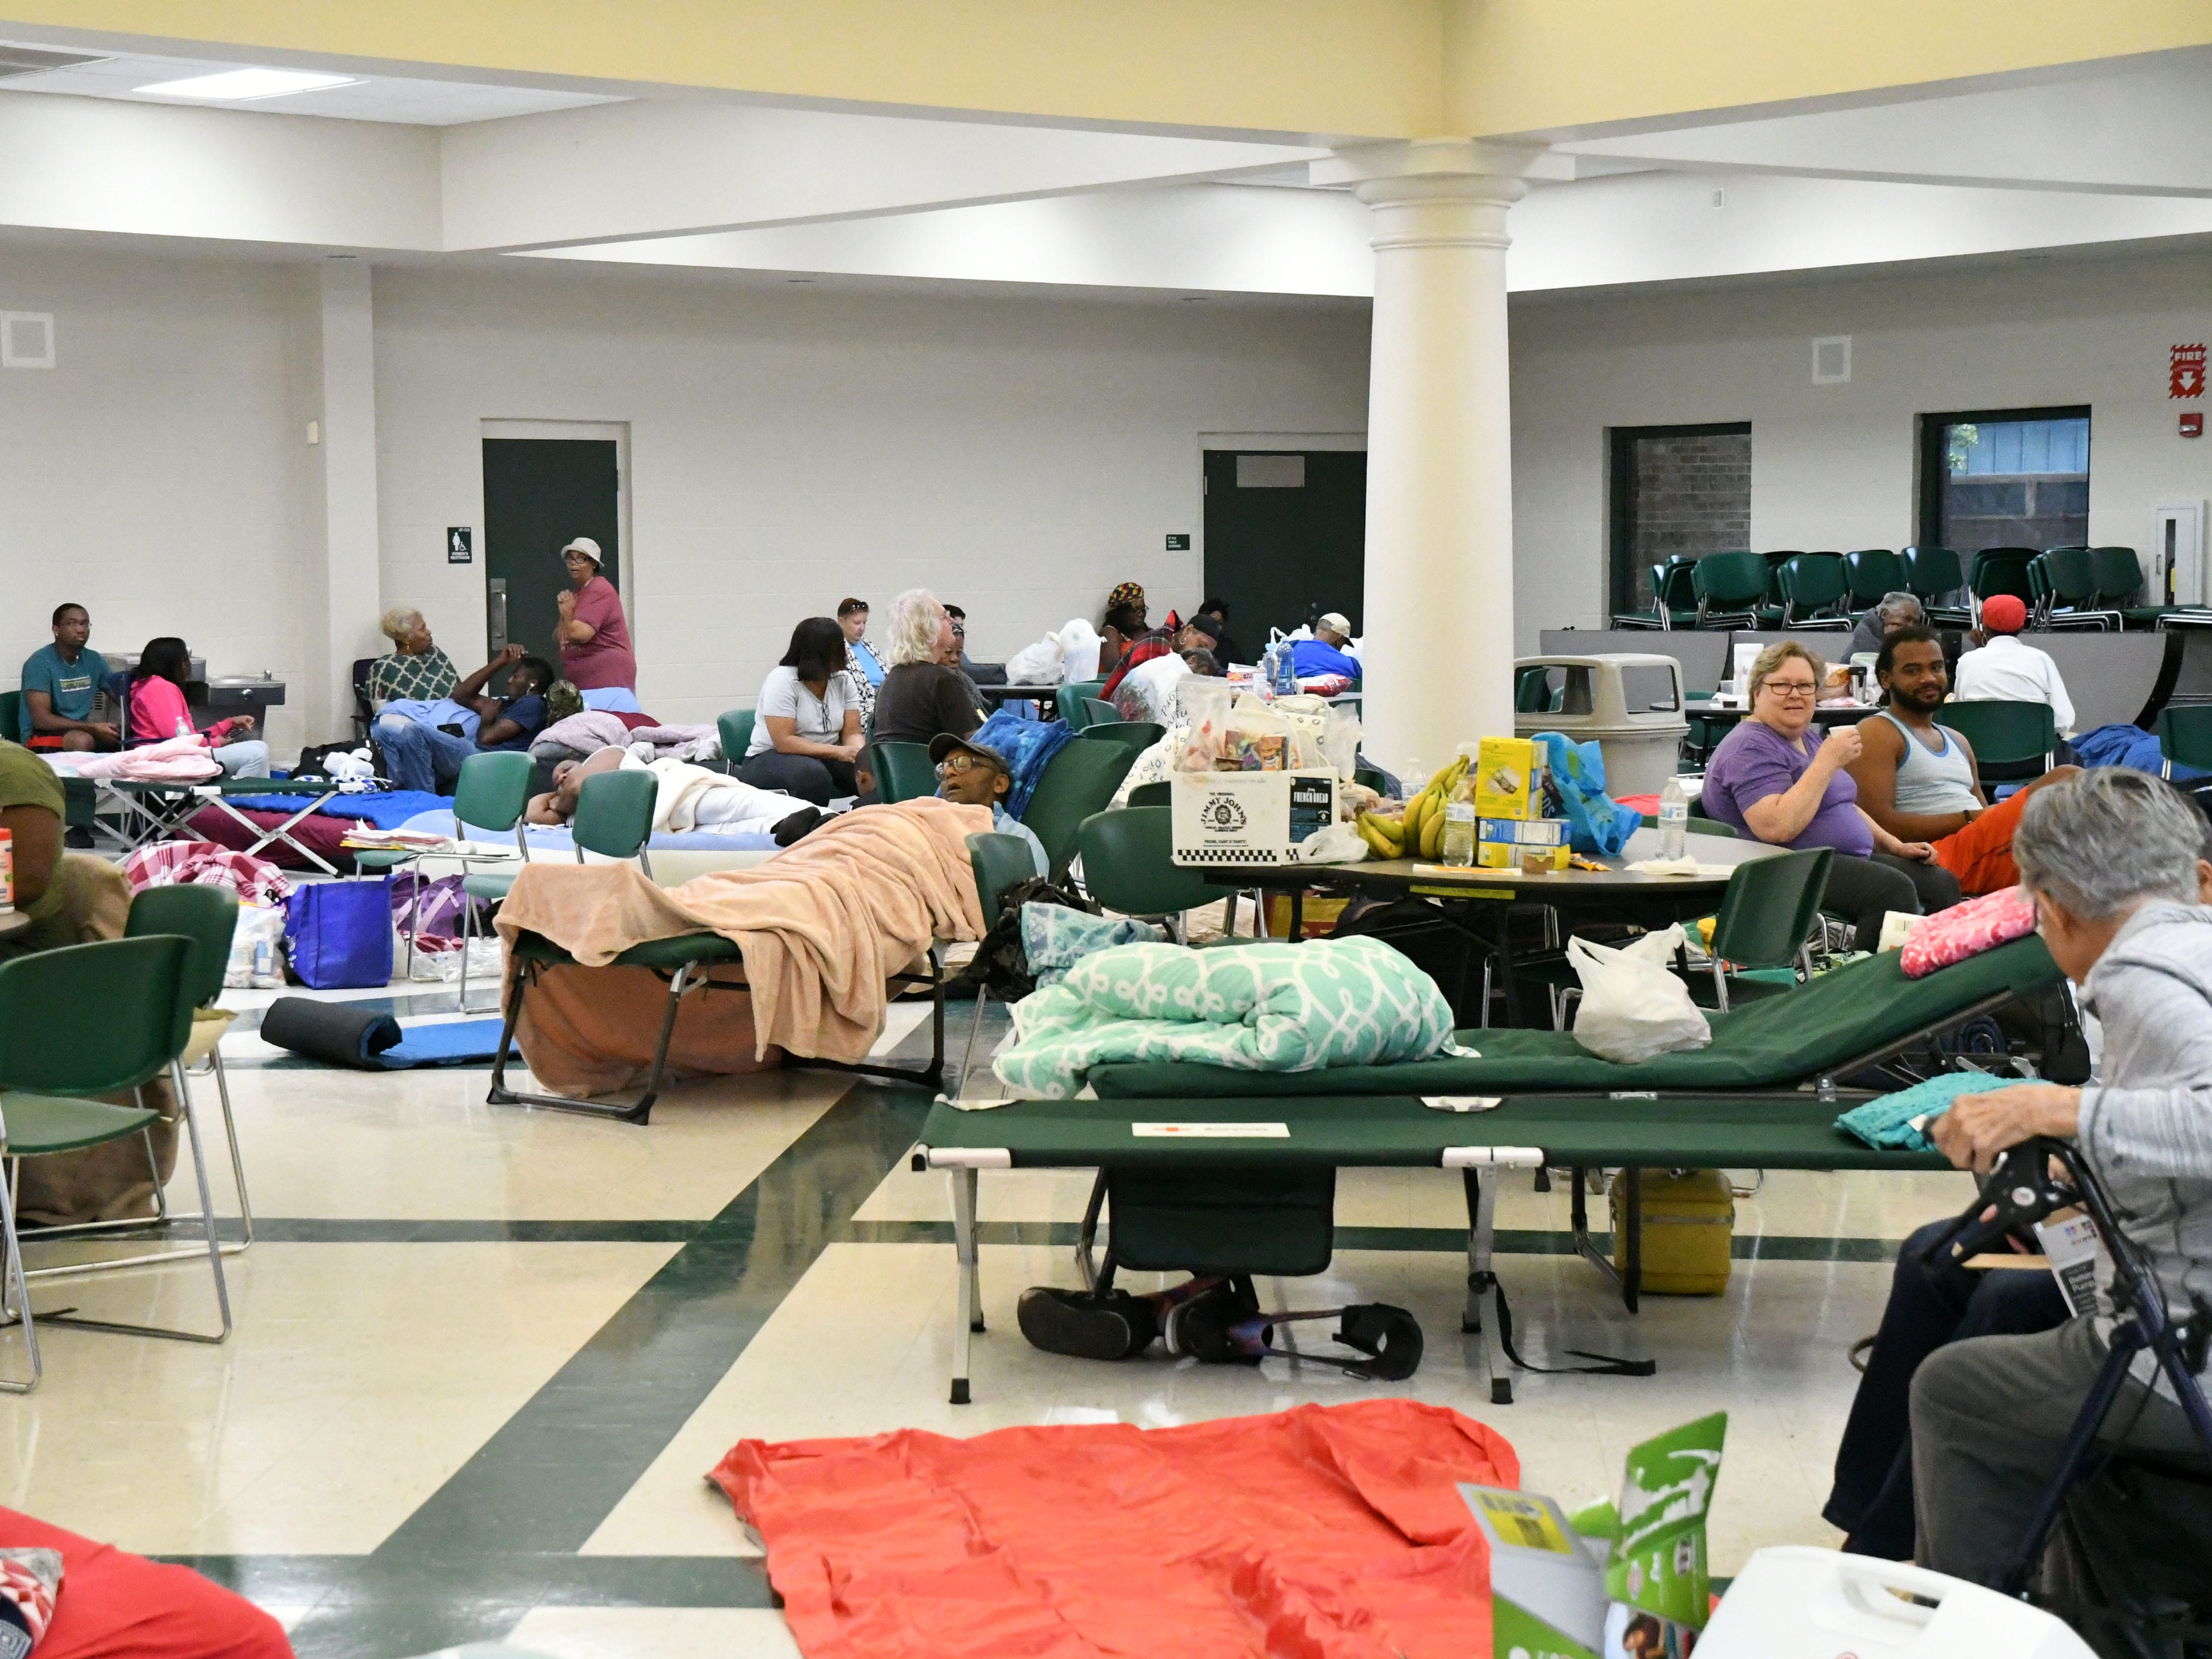 Tallahassee community members seek shelter from Hurricane Michael in the Lincoln high school cafeteria on Wednesday, Oct. 10, 2018.